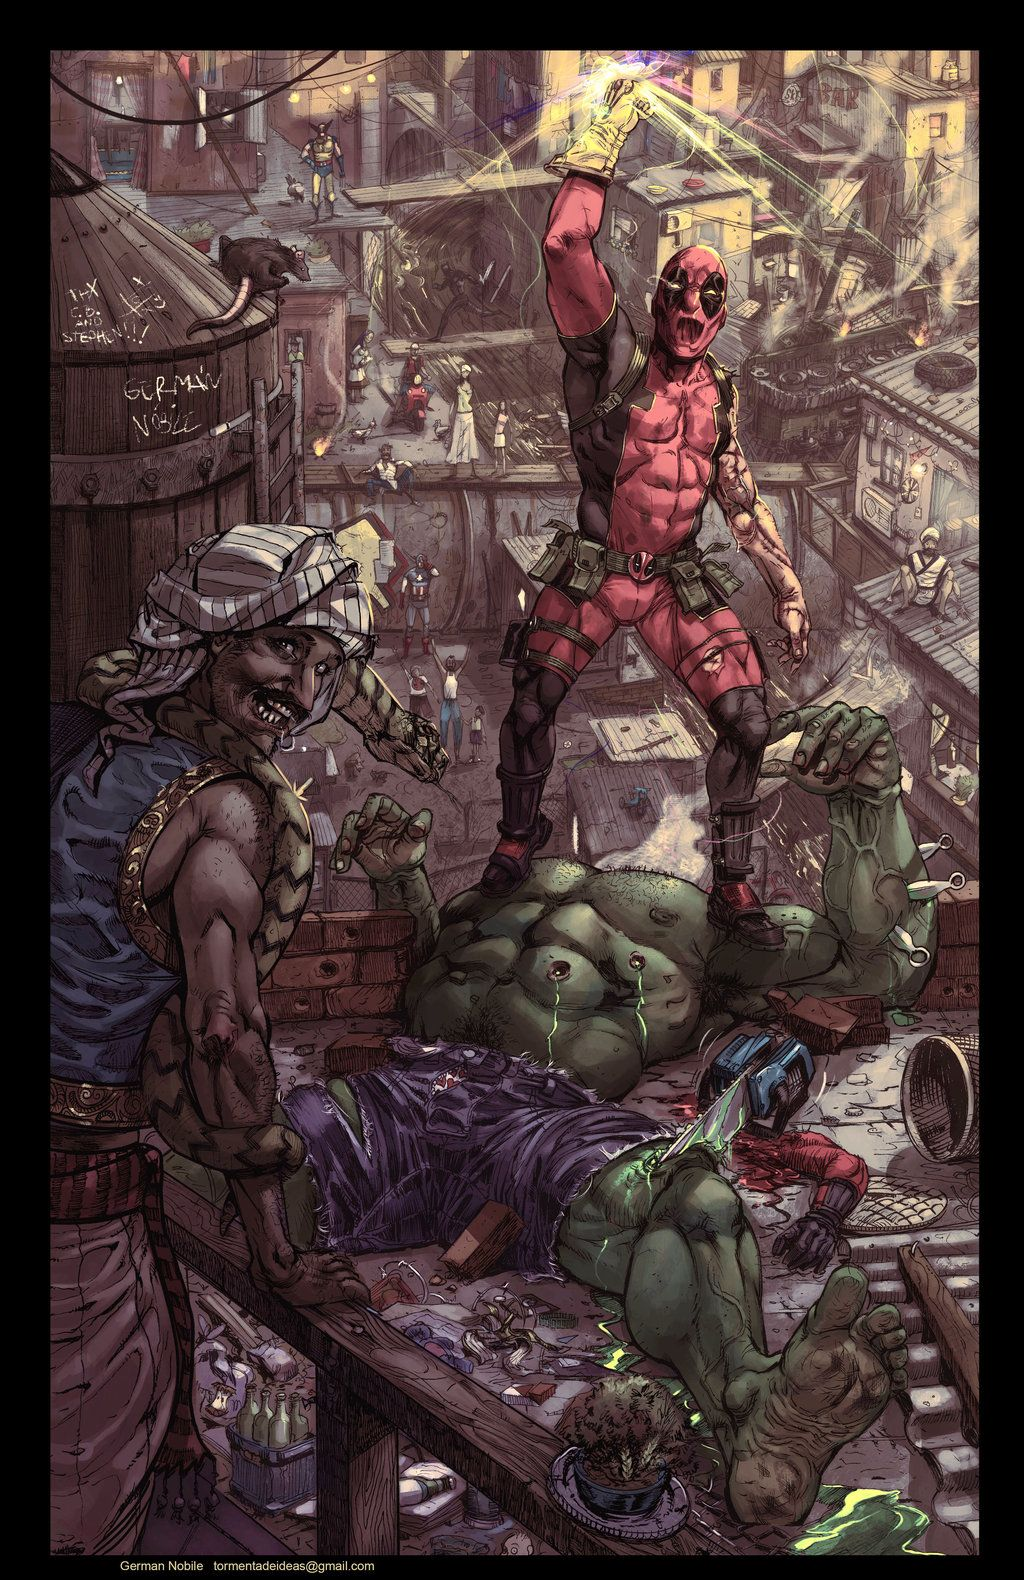 #Deadpool #Fan #Art. (Deadpool Kills The Hulk) By: German Nobile. (THE * 3 * STÅR * ÅWARD OF: AW YEAH, IT'S MAJOR ÅWESOMENESS!!!™) [THANK U 4 PINNING!!!<·><]<©>ÅÅÅ+(OB4E)